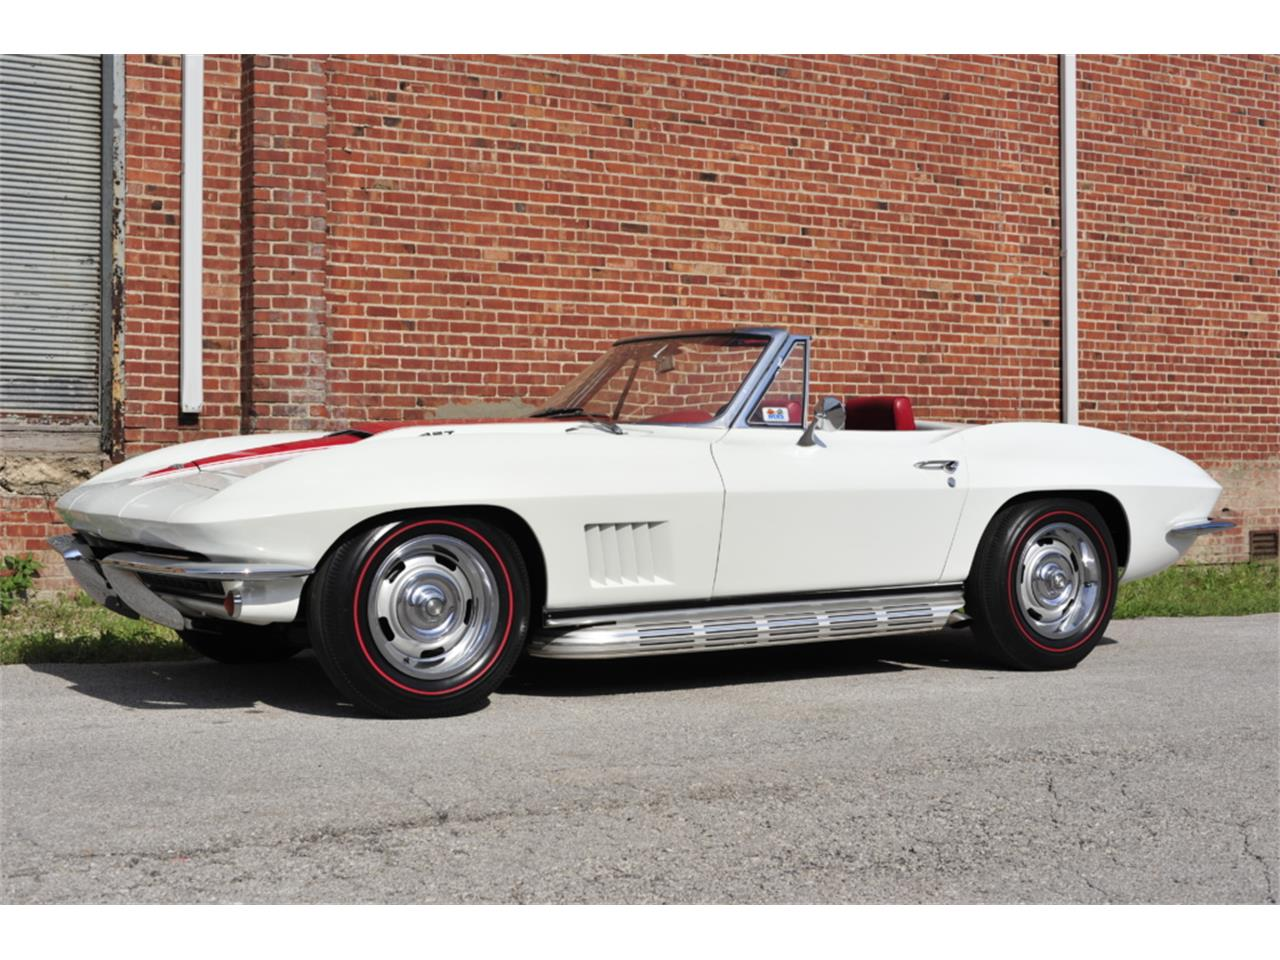 Large Picture of '67 Chevrolet Corvette located in N. Kansas City Missouri - $129,995.00 - PZ9R